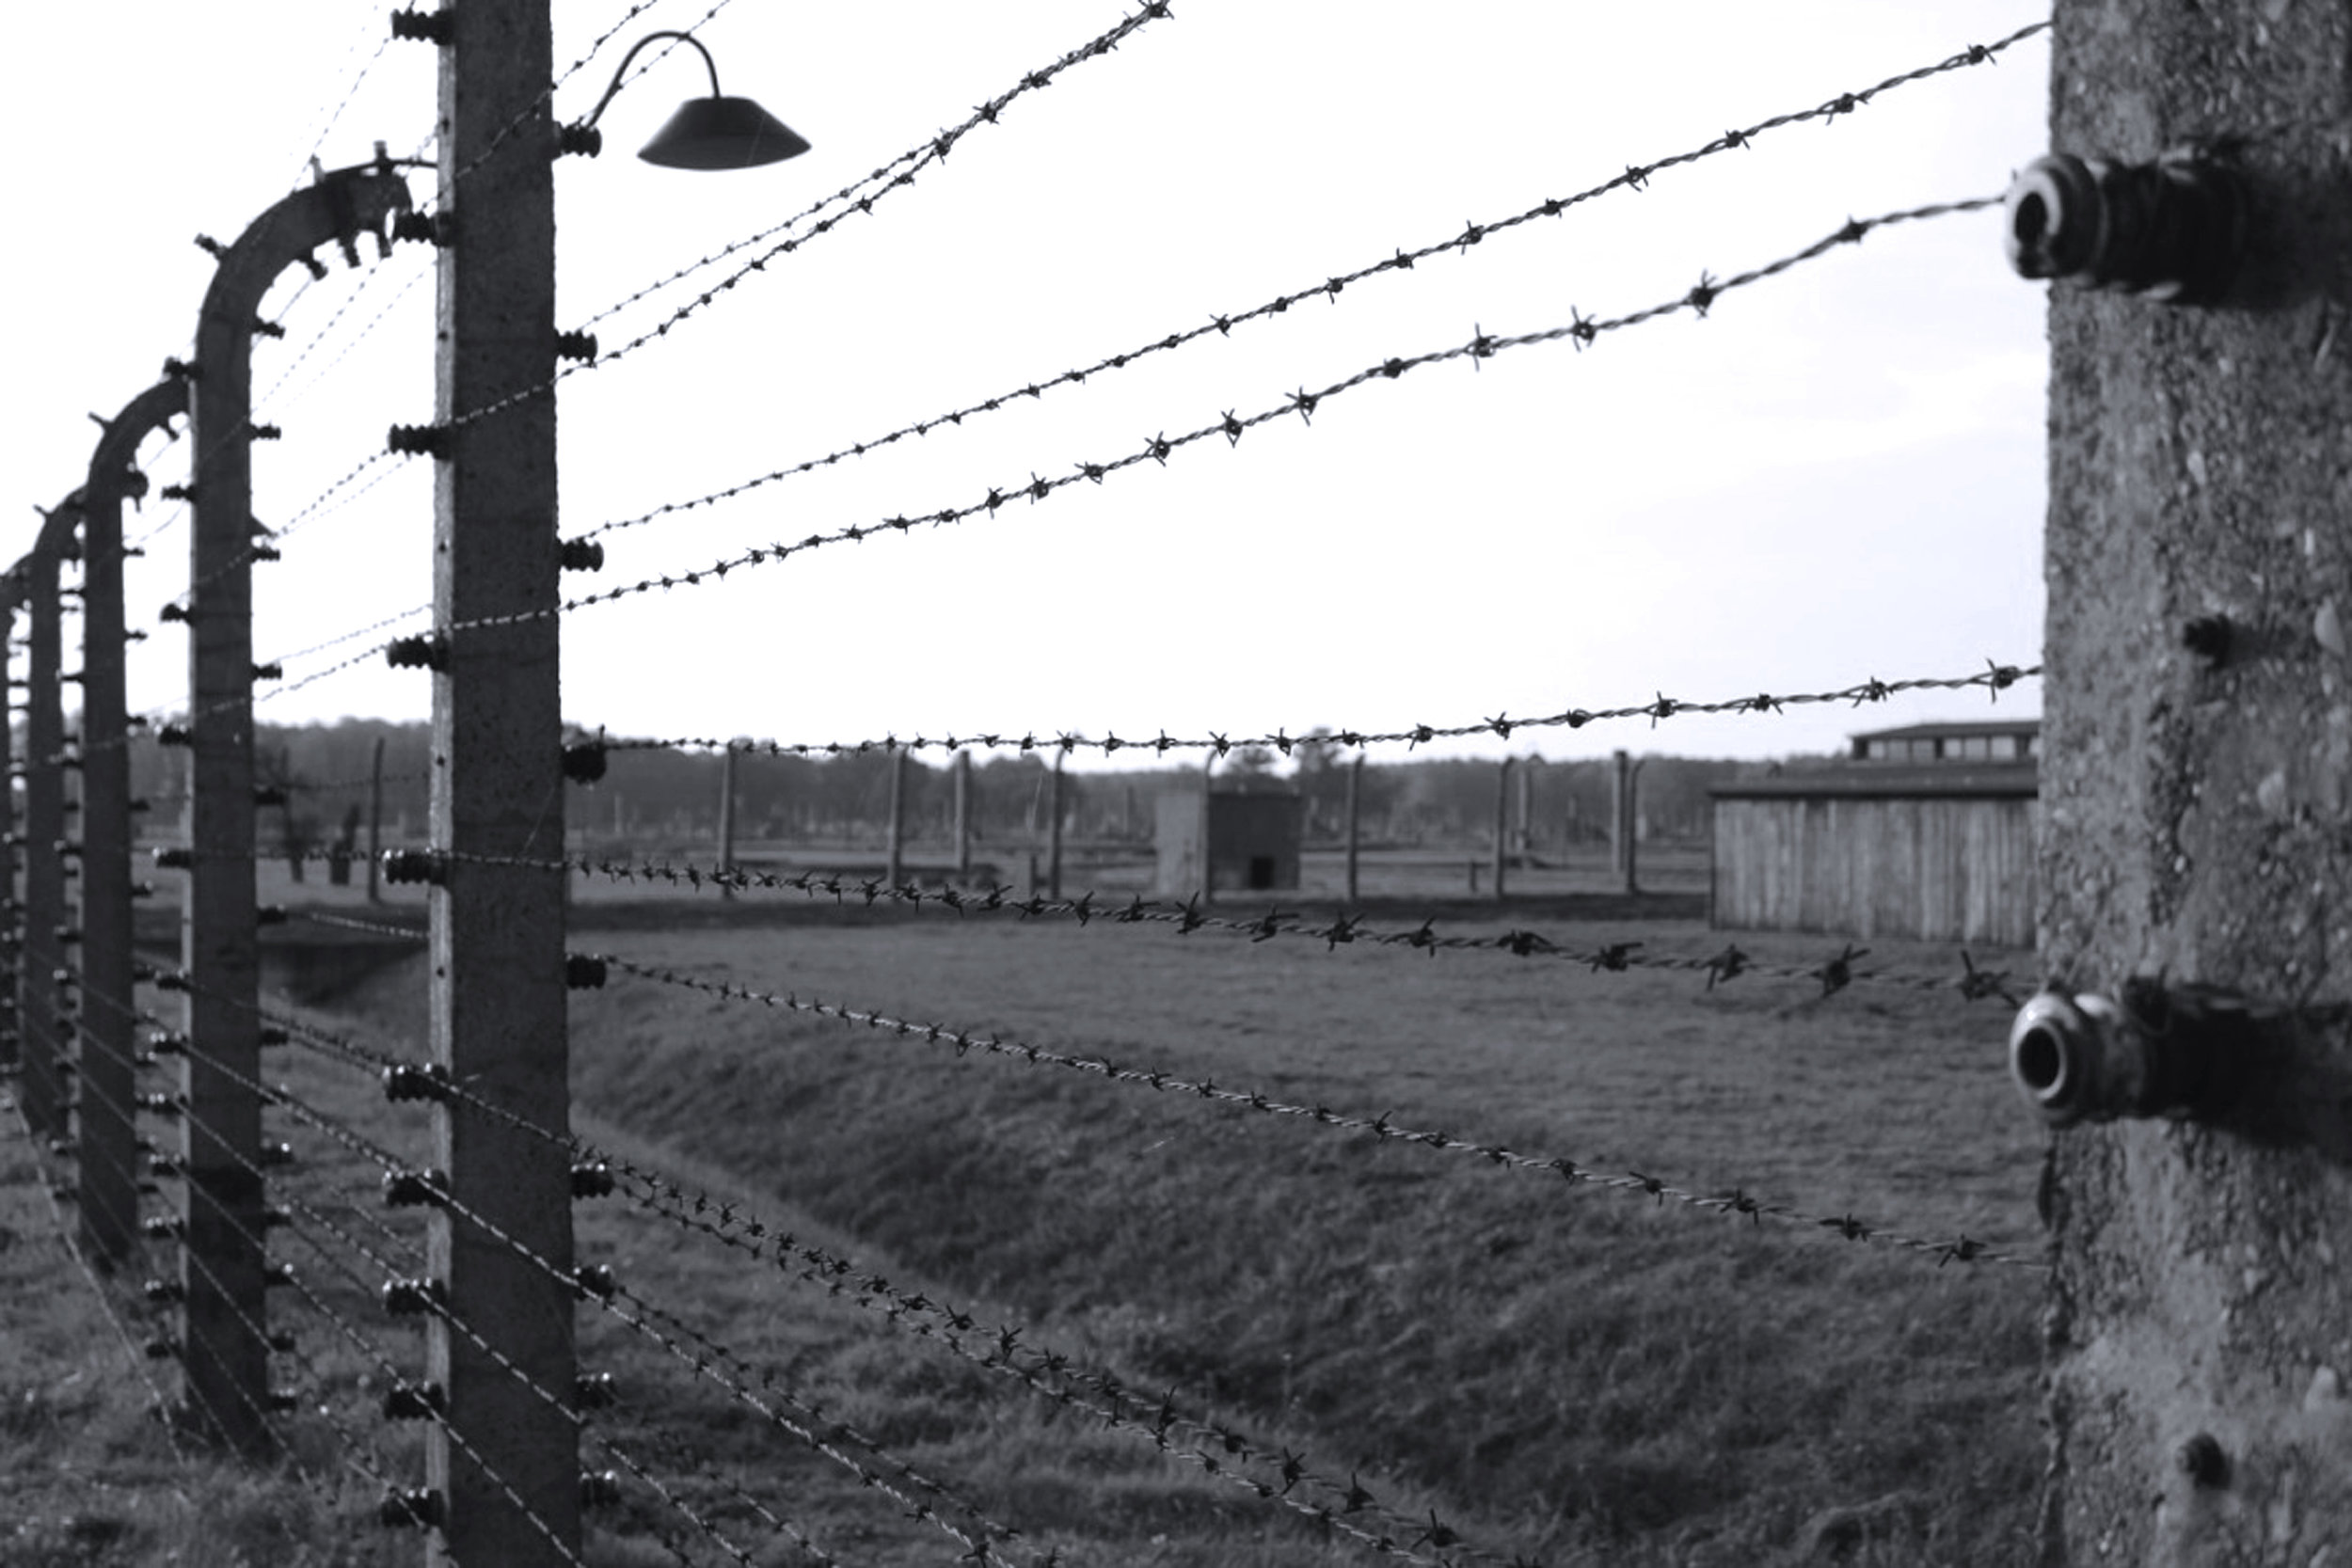 The fence around the camp (Auschwitz I and Auschwitz II – Birkenau ) was almost 14km long. Prisoners sometimes attempted to commit suicide by throwing themselves on the electrified wires.